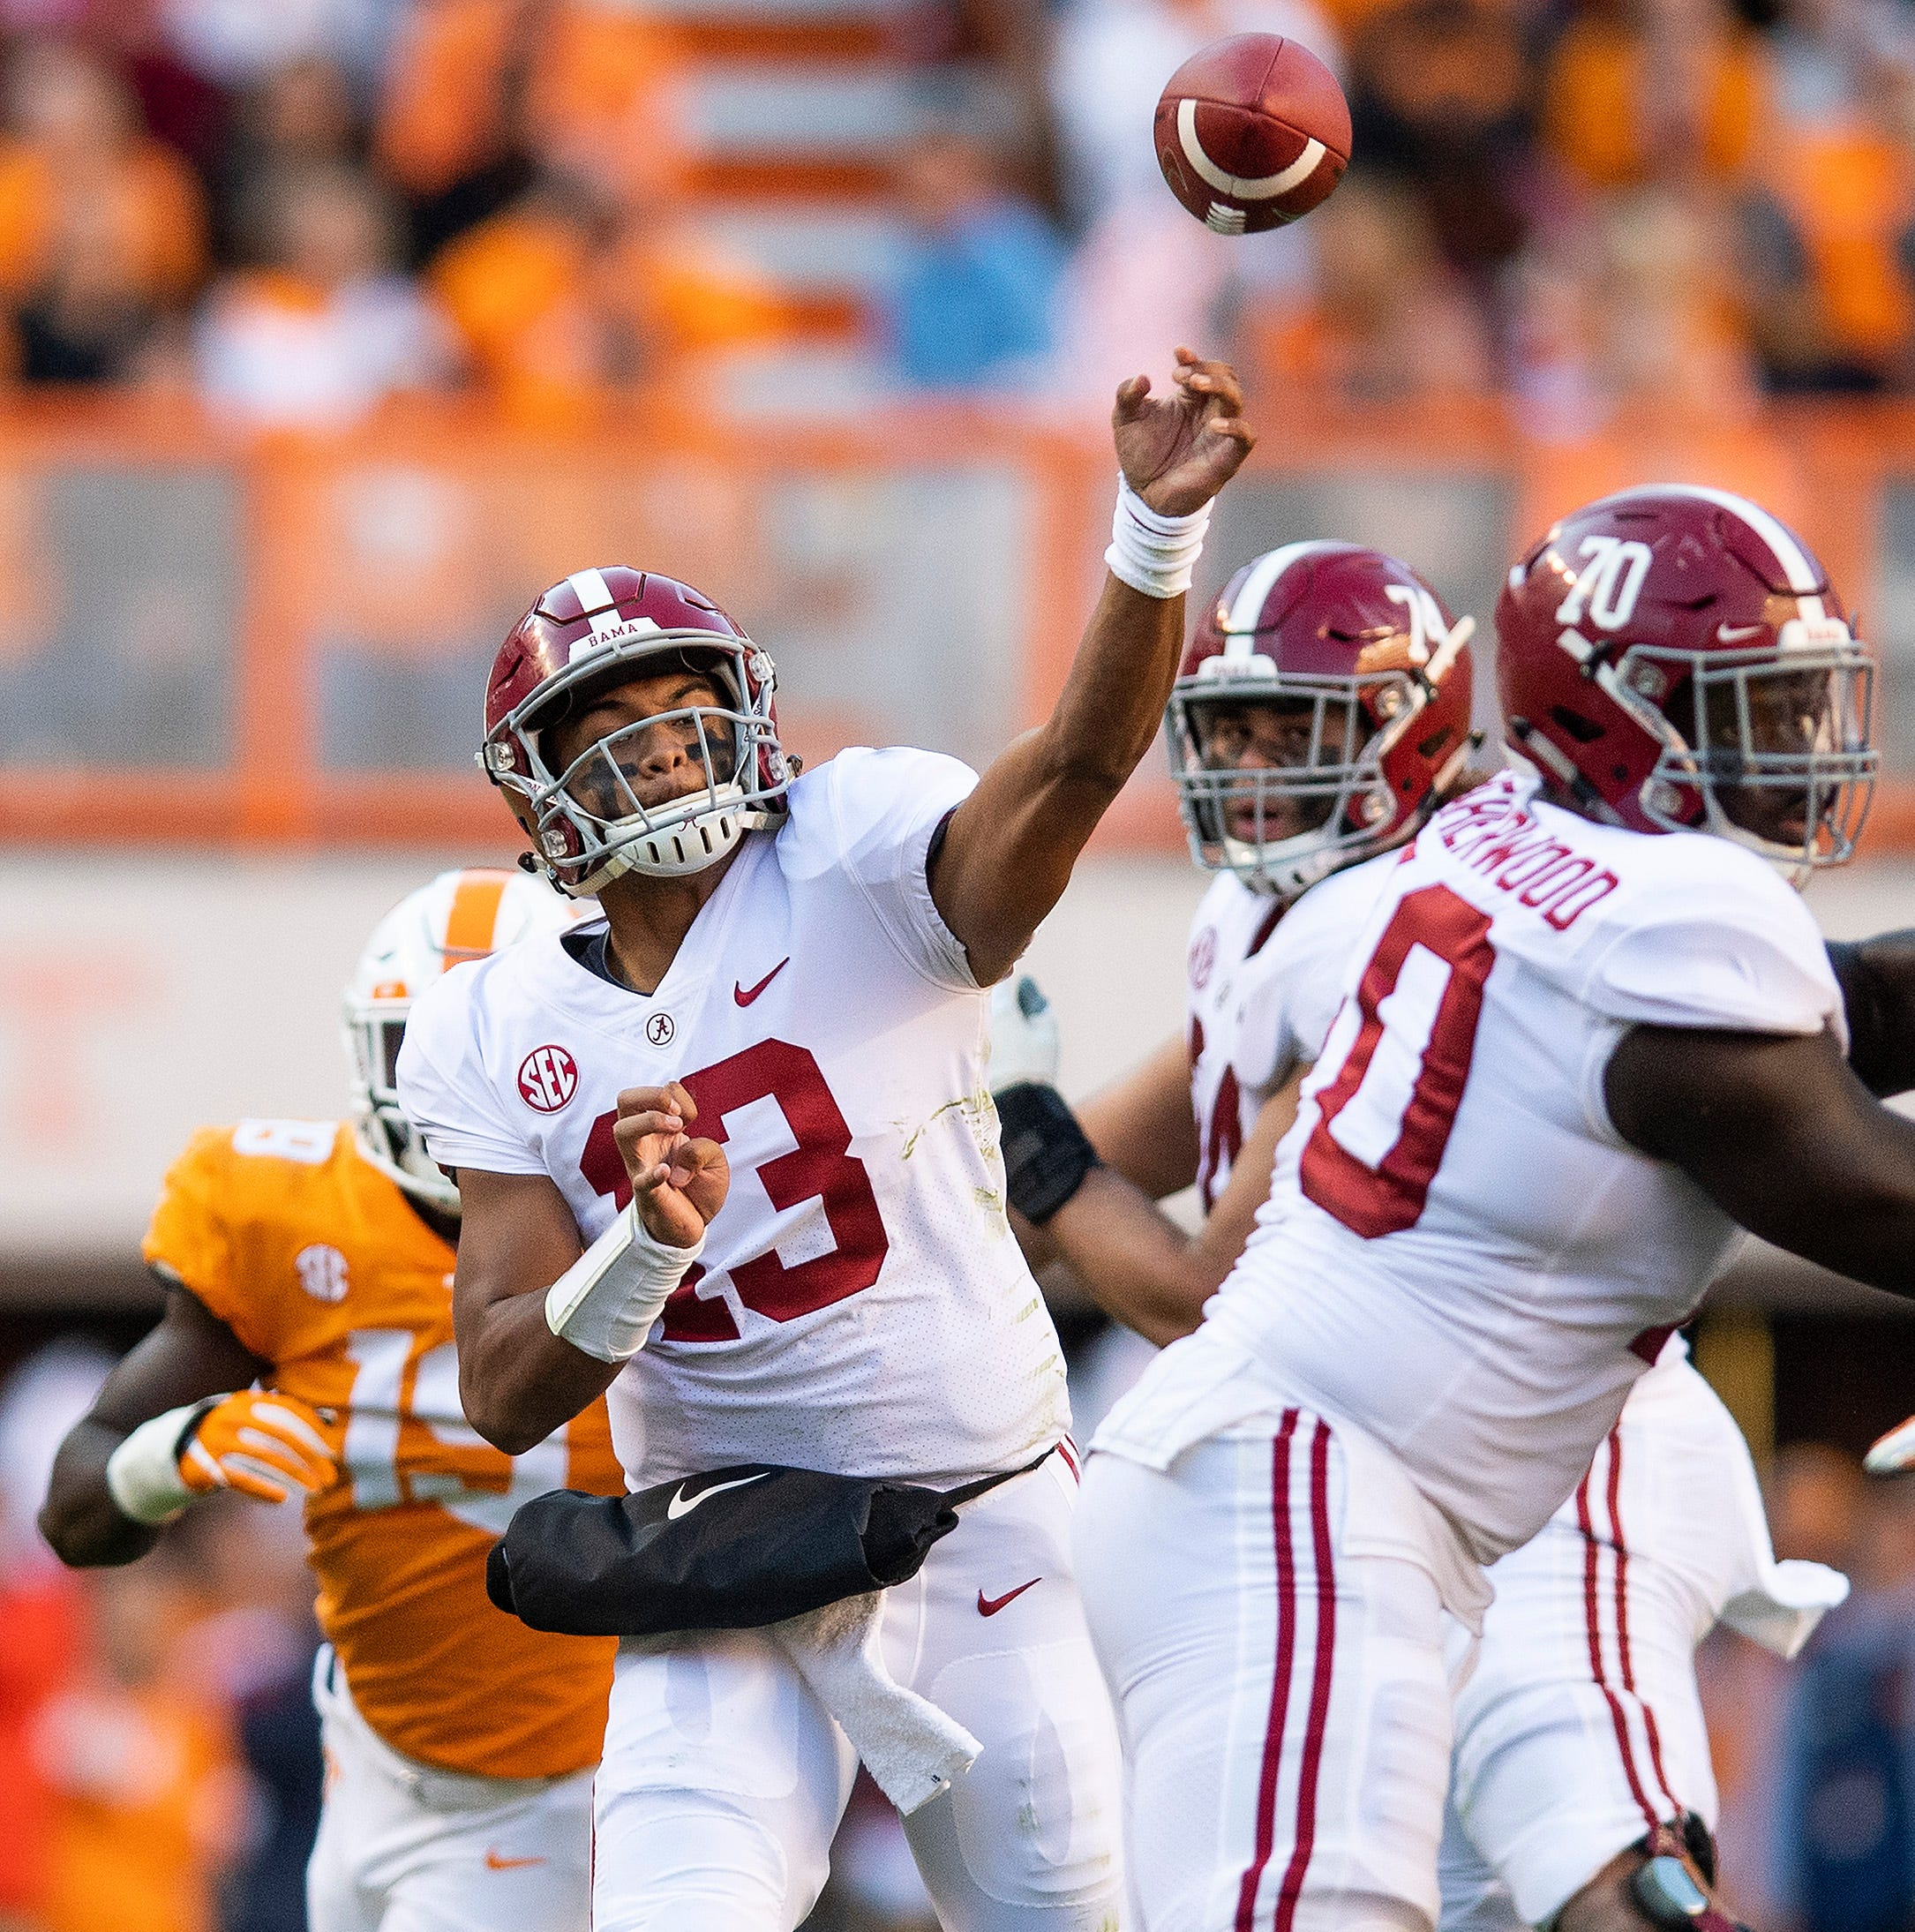 The Vols will survive. But it's over for college football — Alabama's too good.